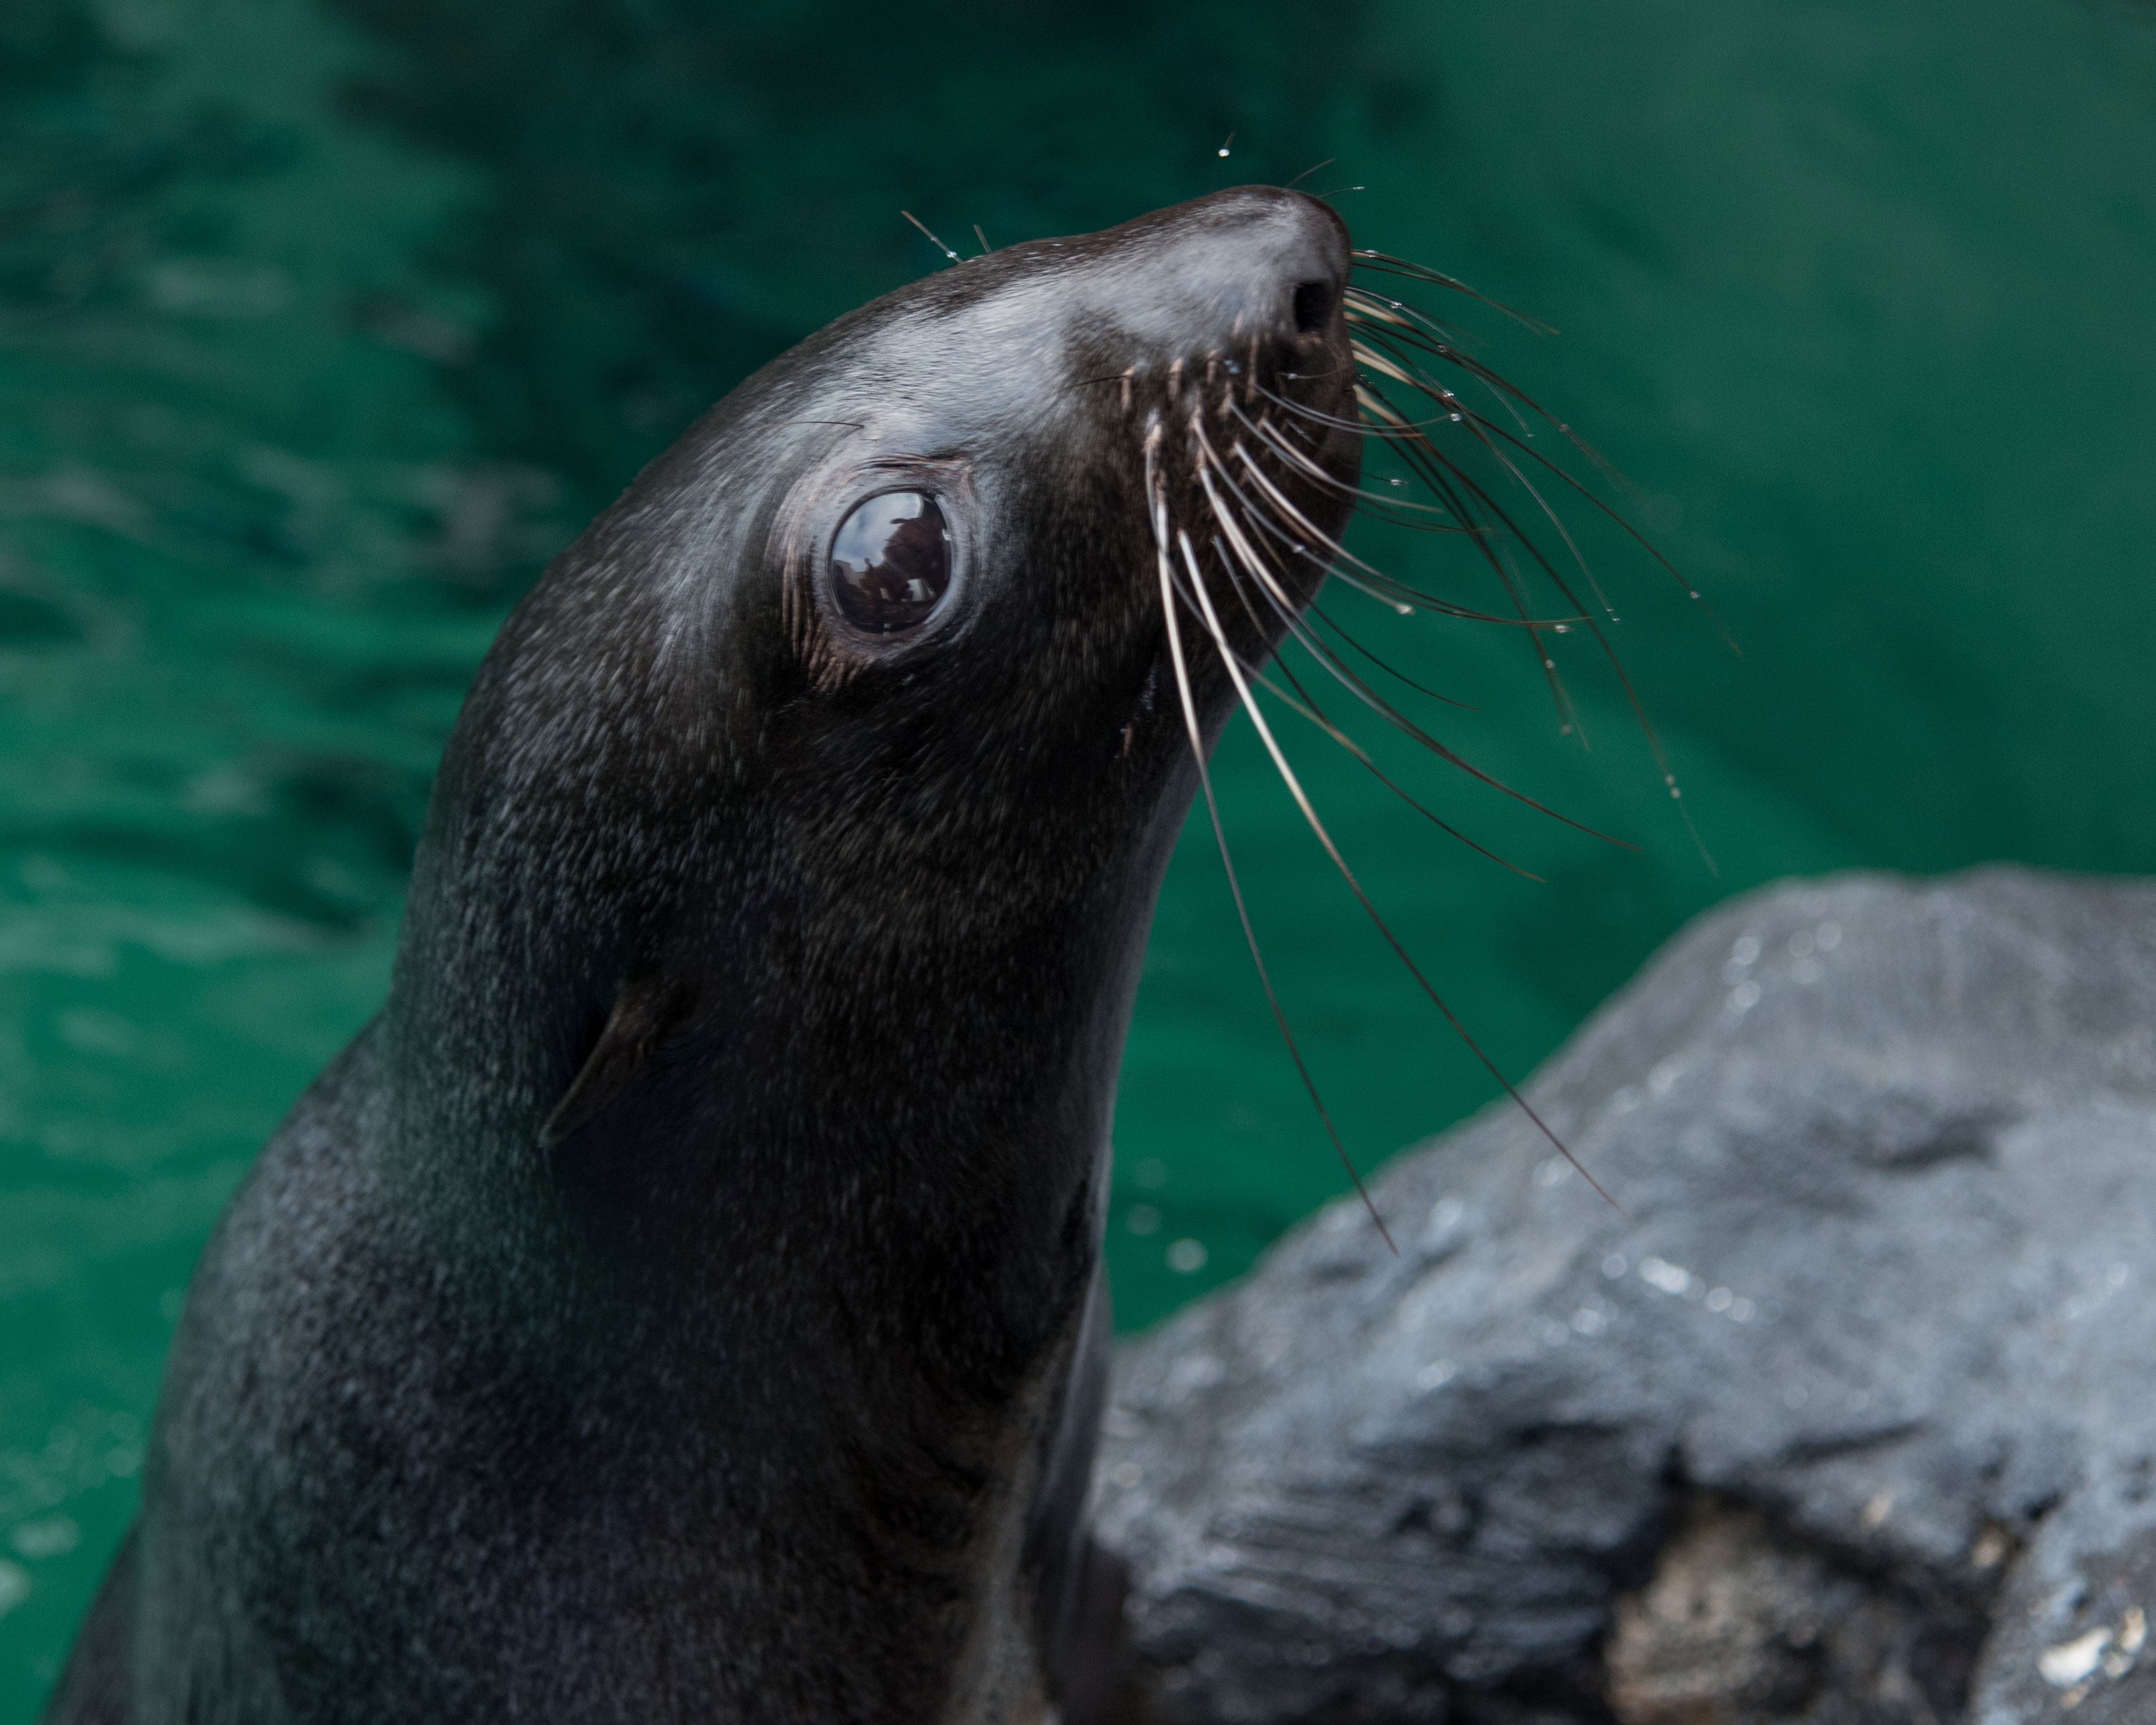 Learn all about northern fur seals with us this week!